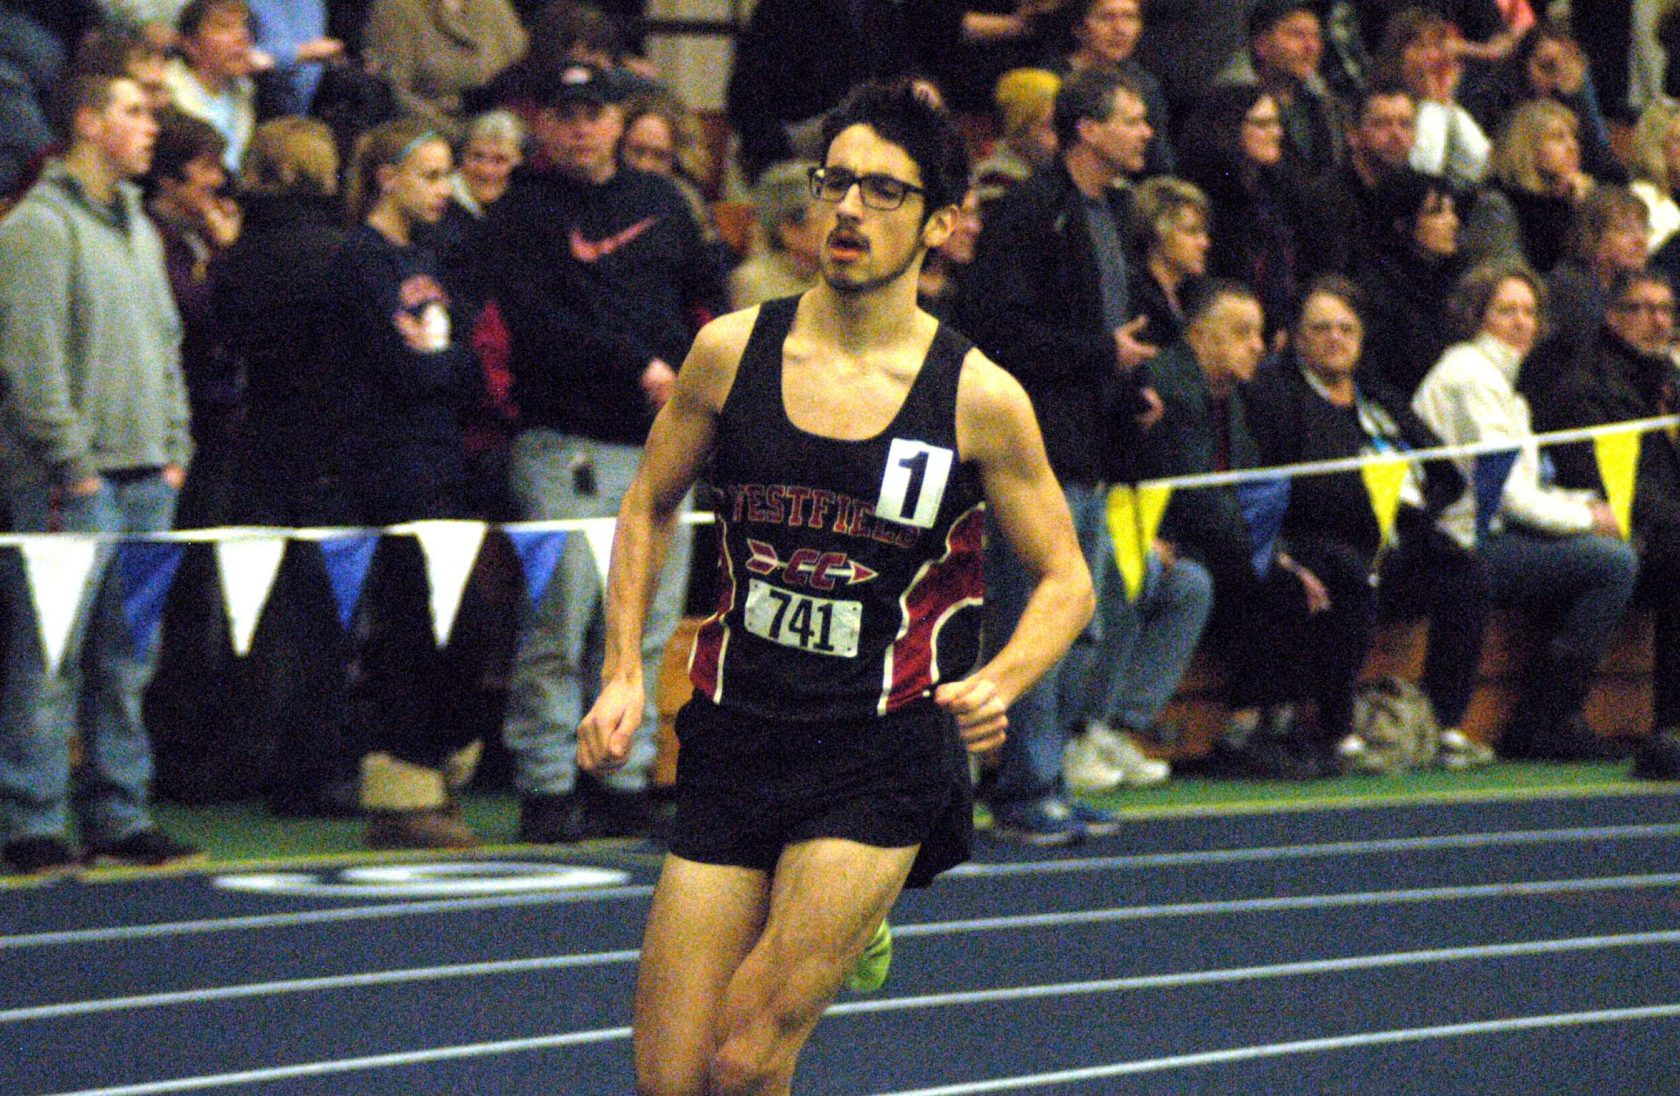 Westfield's Blake Croteau rounds the track during Monday's PVIAC championship meet at Smith College in Northampton. Croteau won the mile and 2-mile event. (Photo by Chris Putz)